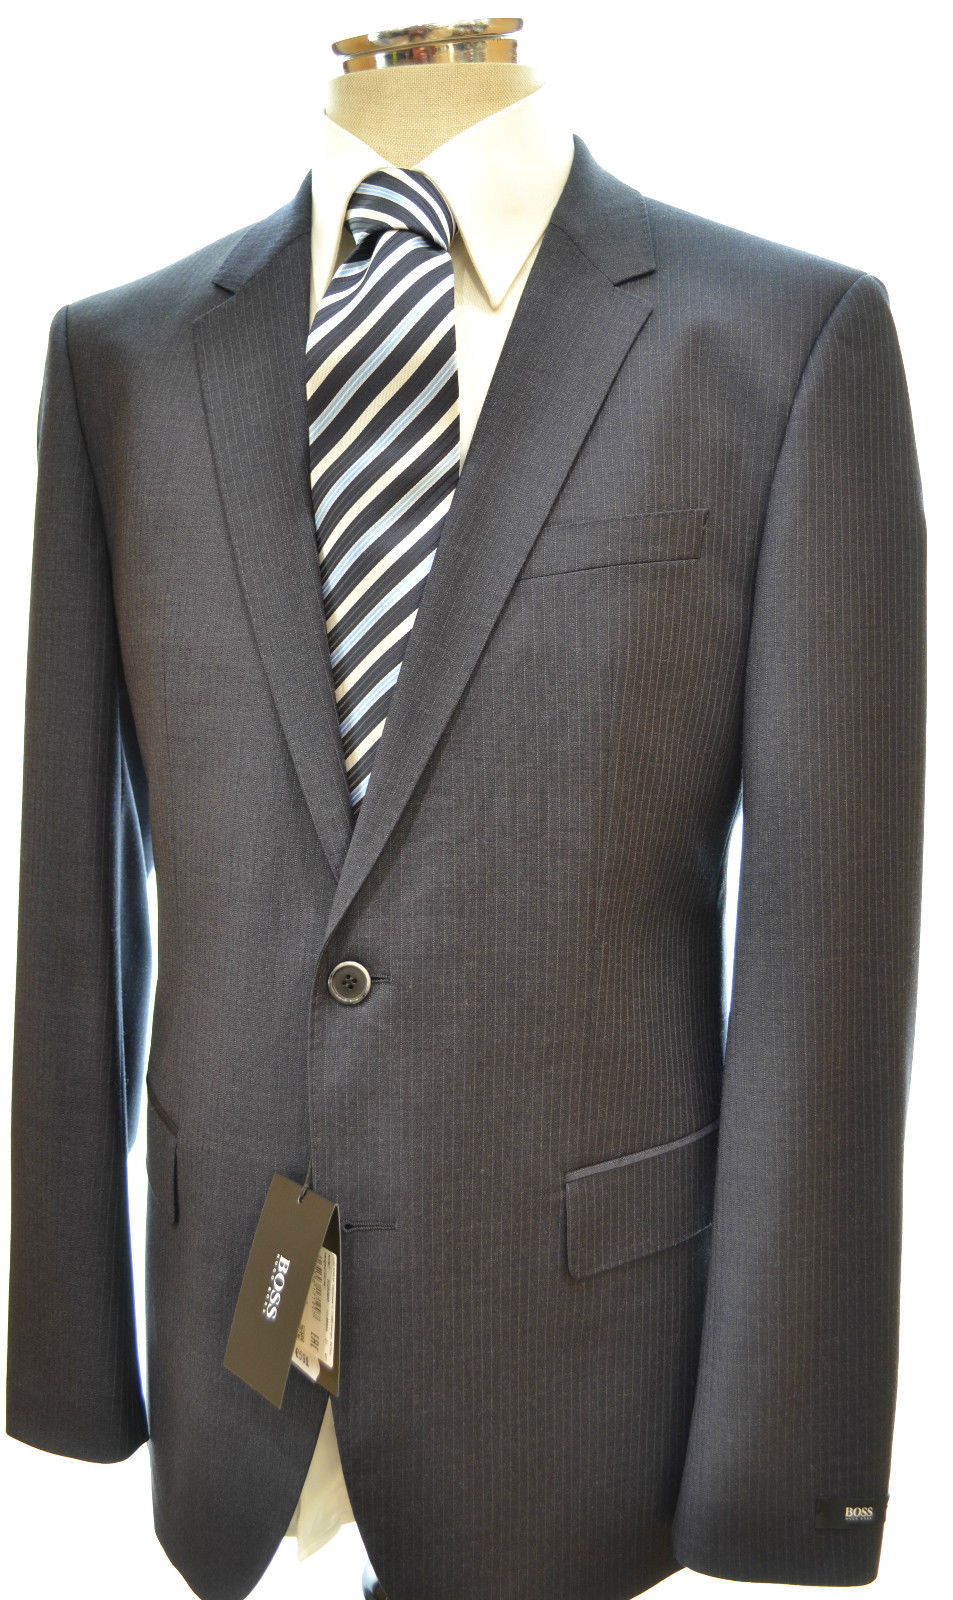 HUGO BOSS ABITO UOMO MOD. HEDGE2/GENSE1 TG. 54 HUGO BOSS MAN SUIT